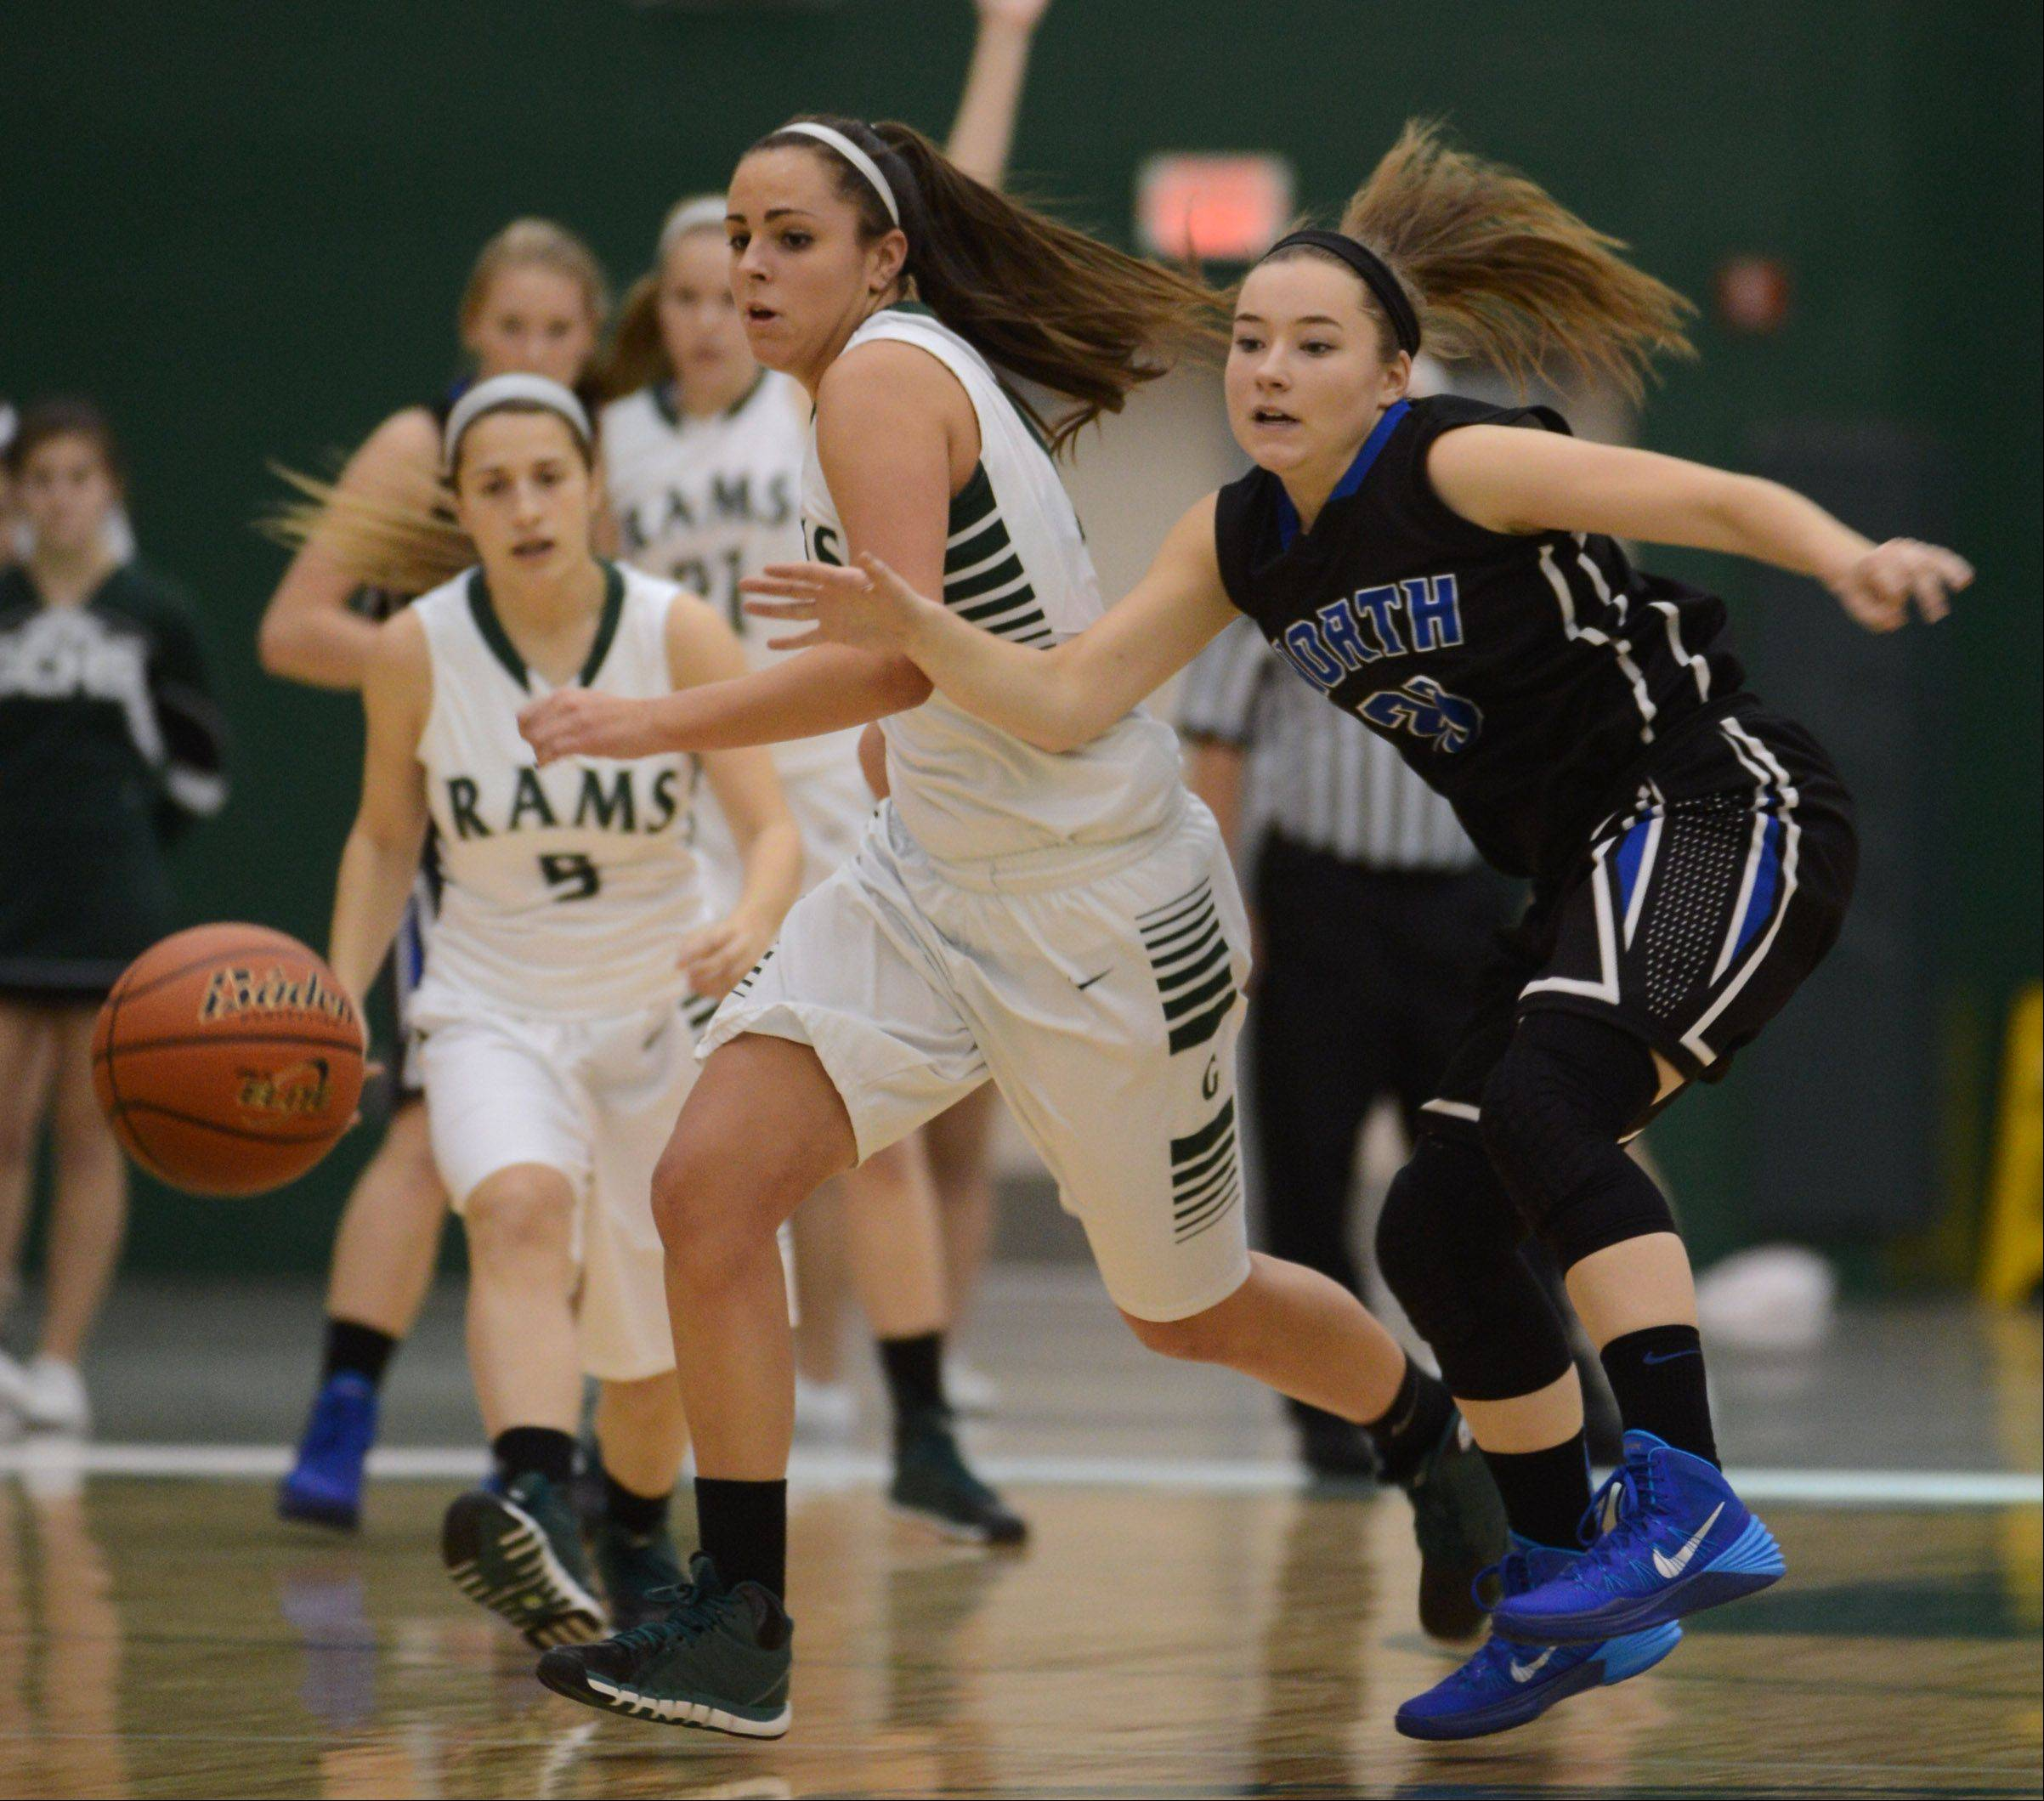 Grayslake Central�s Carson Sparkman, left, and St. Charles North�s Sam Novak chase down a loose ball during Thursday�s game in Grayslake.